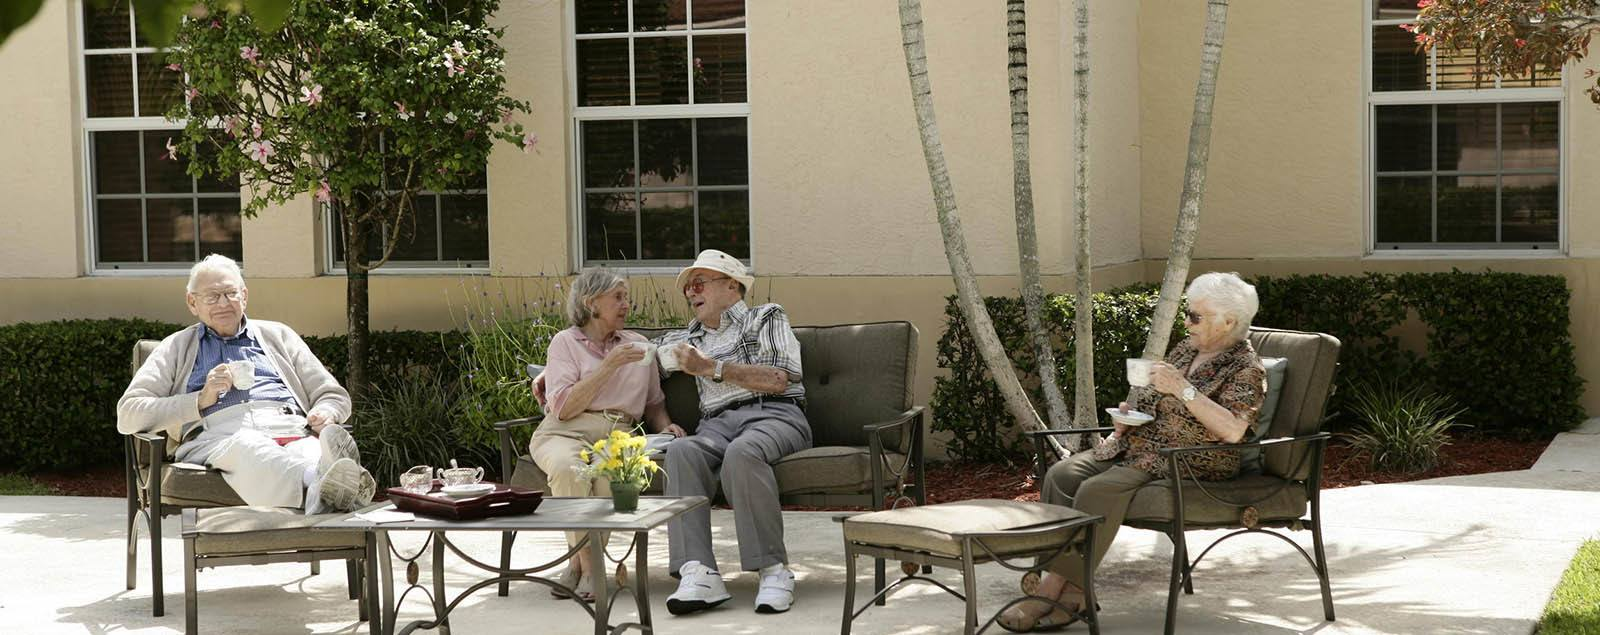 Schedule a senior living tour in Coral Springs